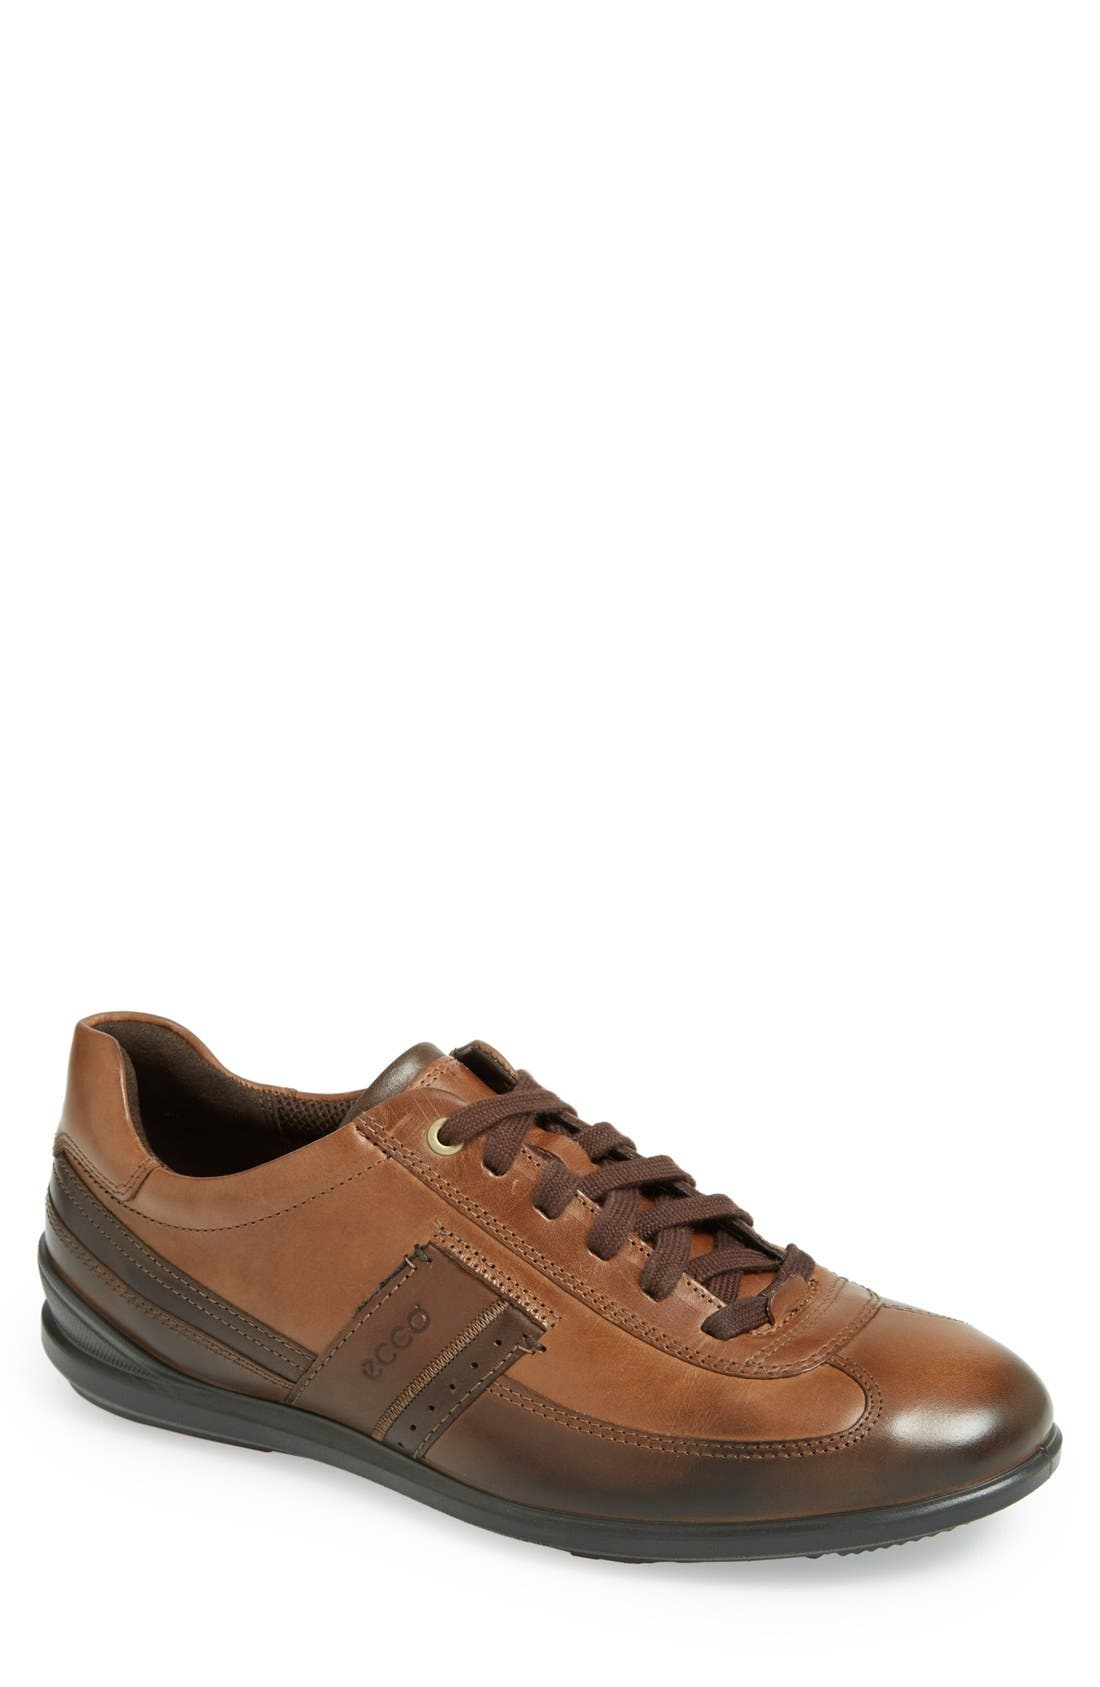 Alternate Image 1 Selected - ECCO 'Chander' Sneaker (Men)